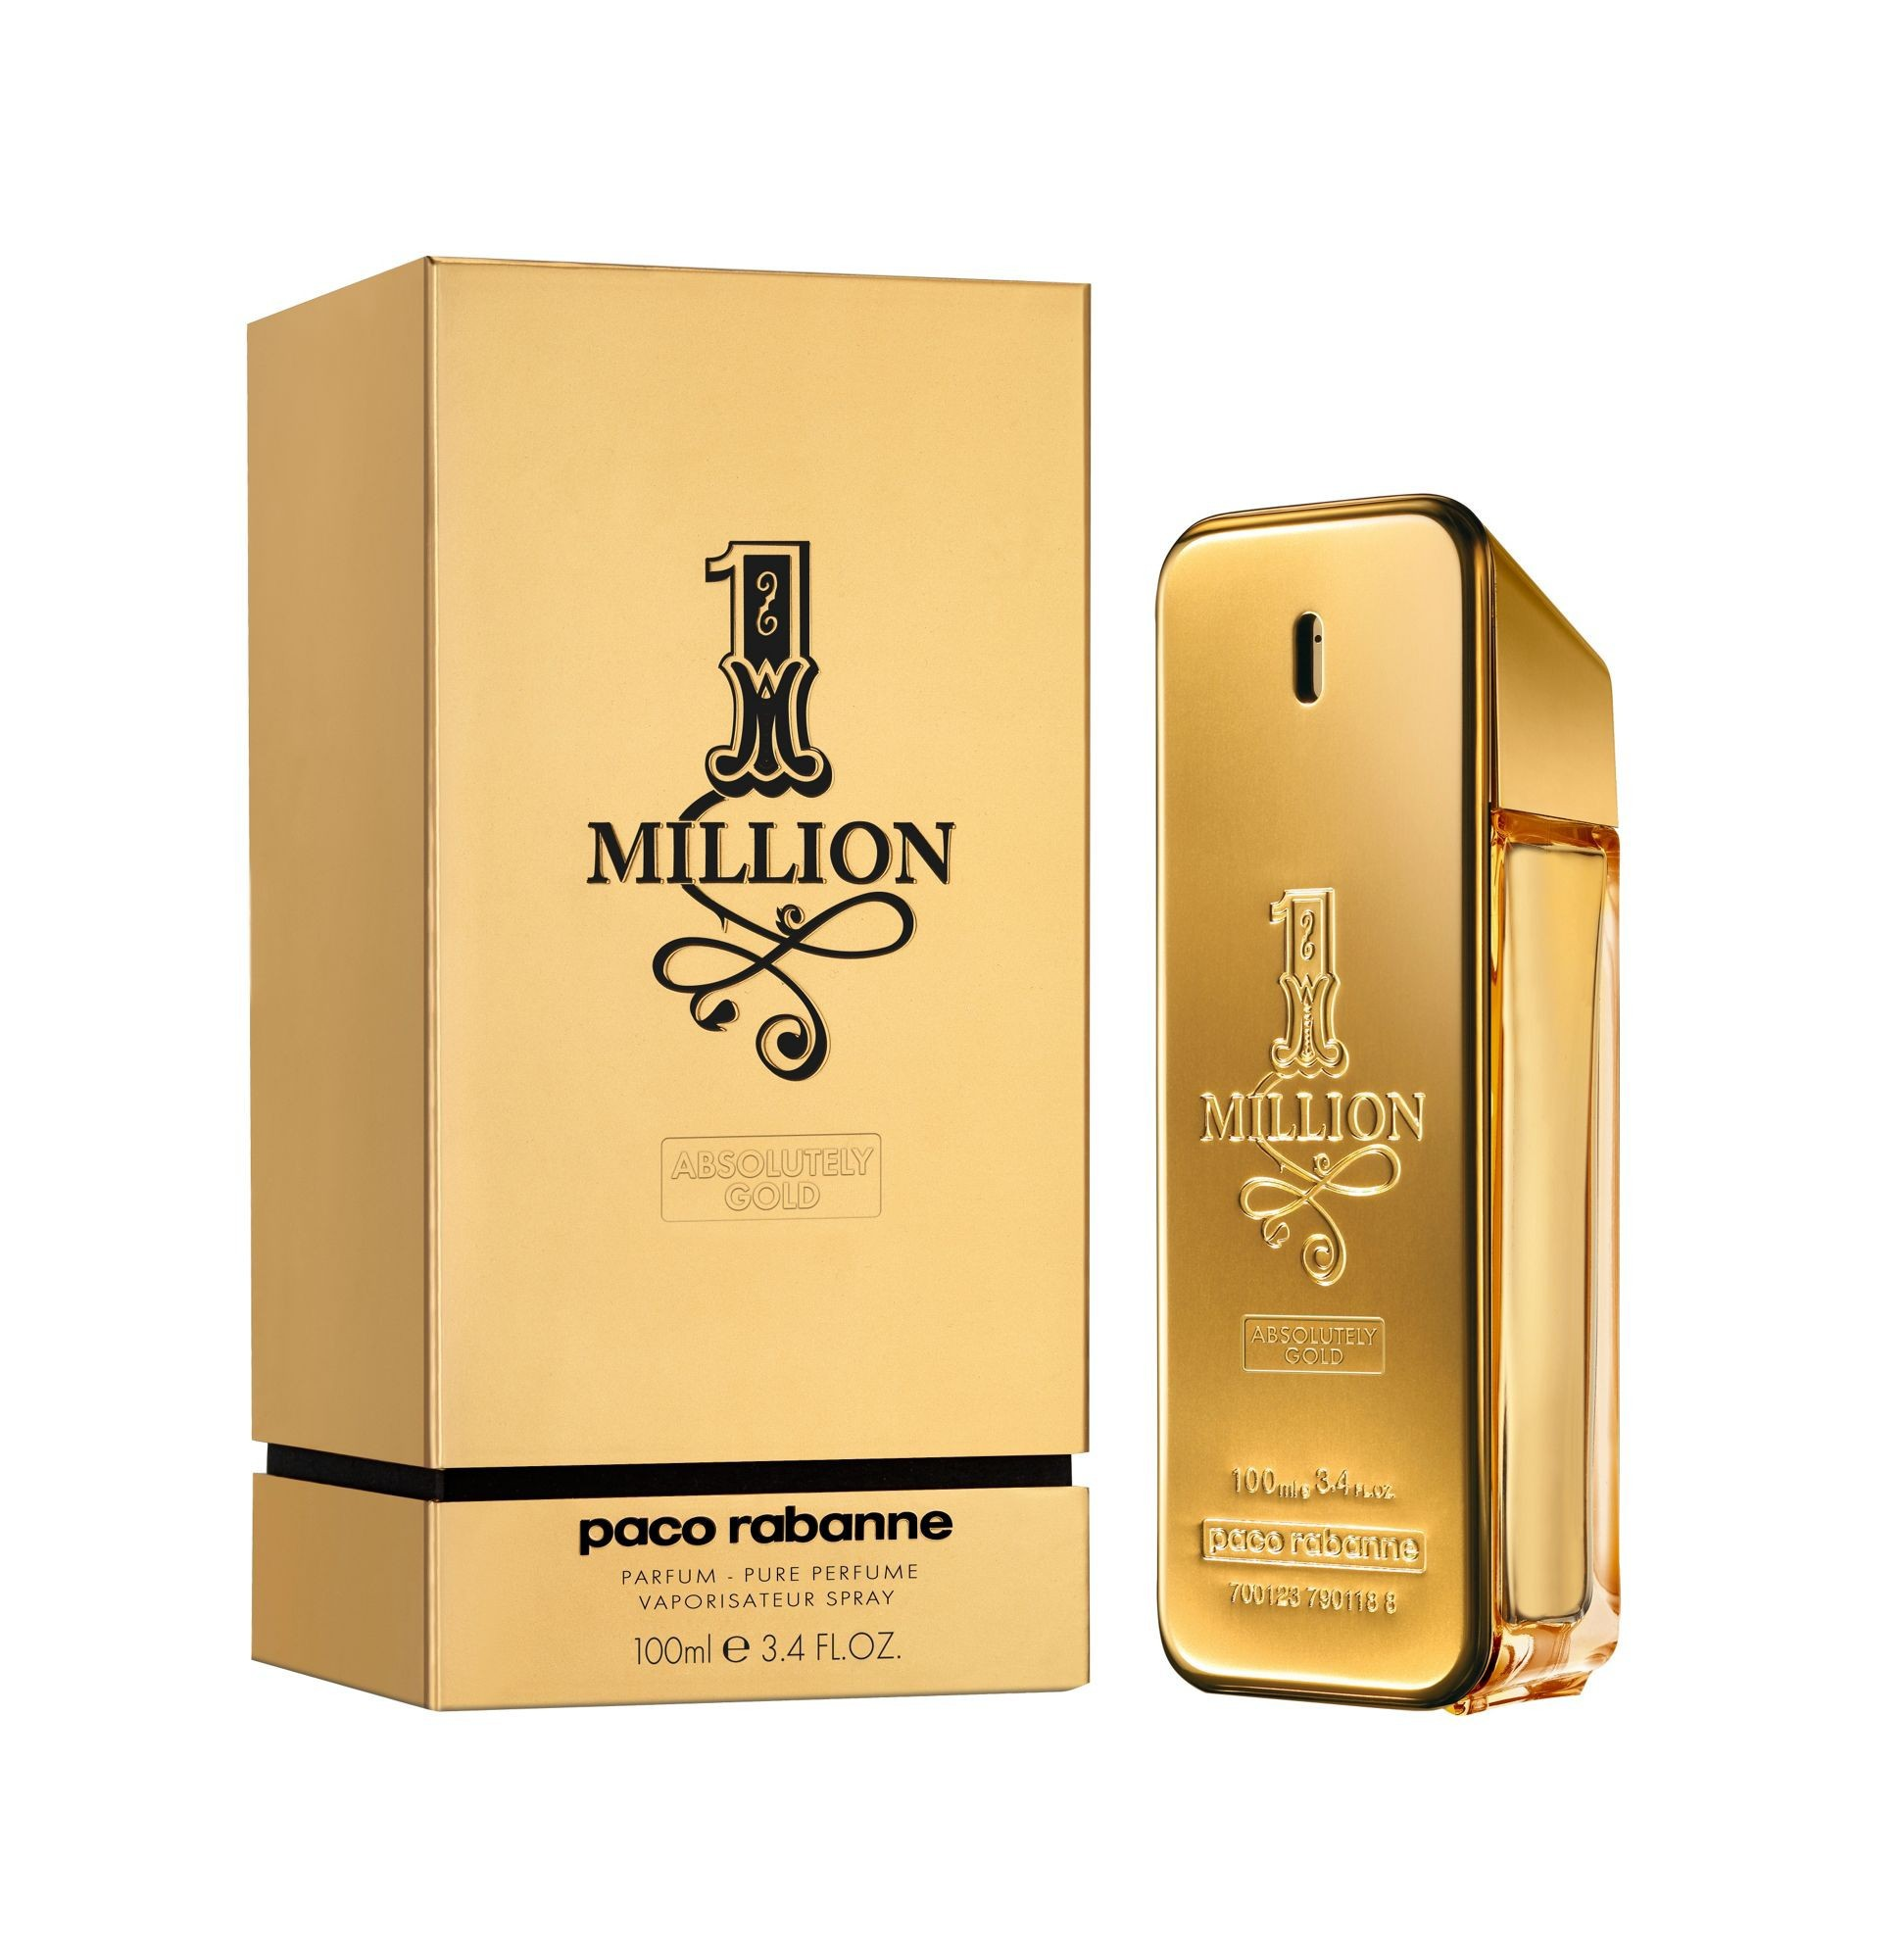 Paco Rabanne 1 Million Absolutely Gold аромат для мужчин